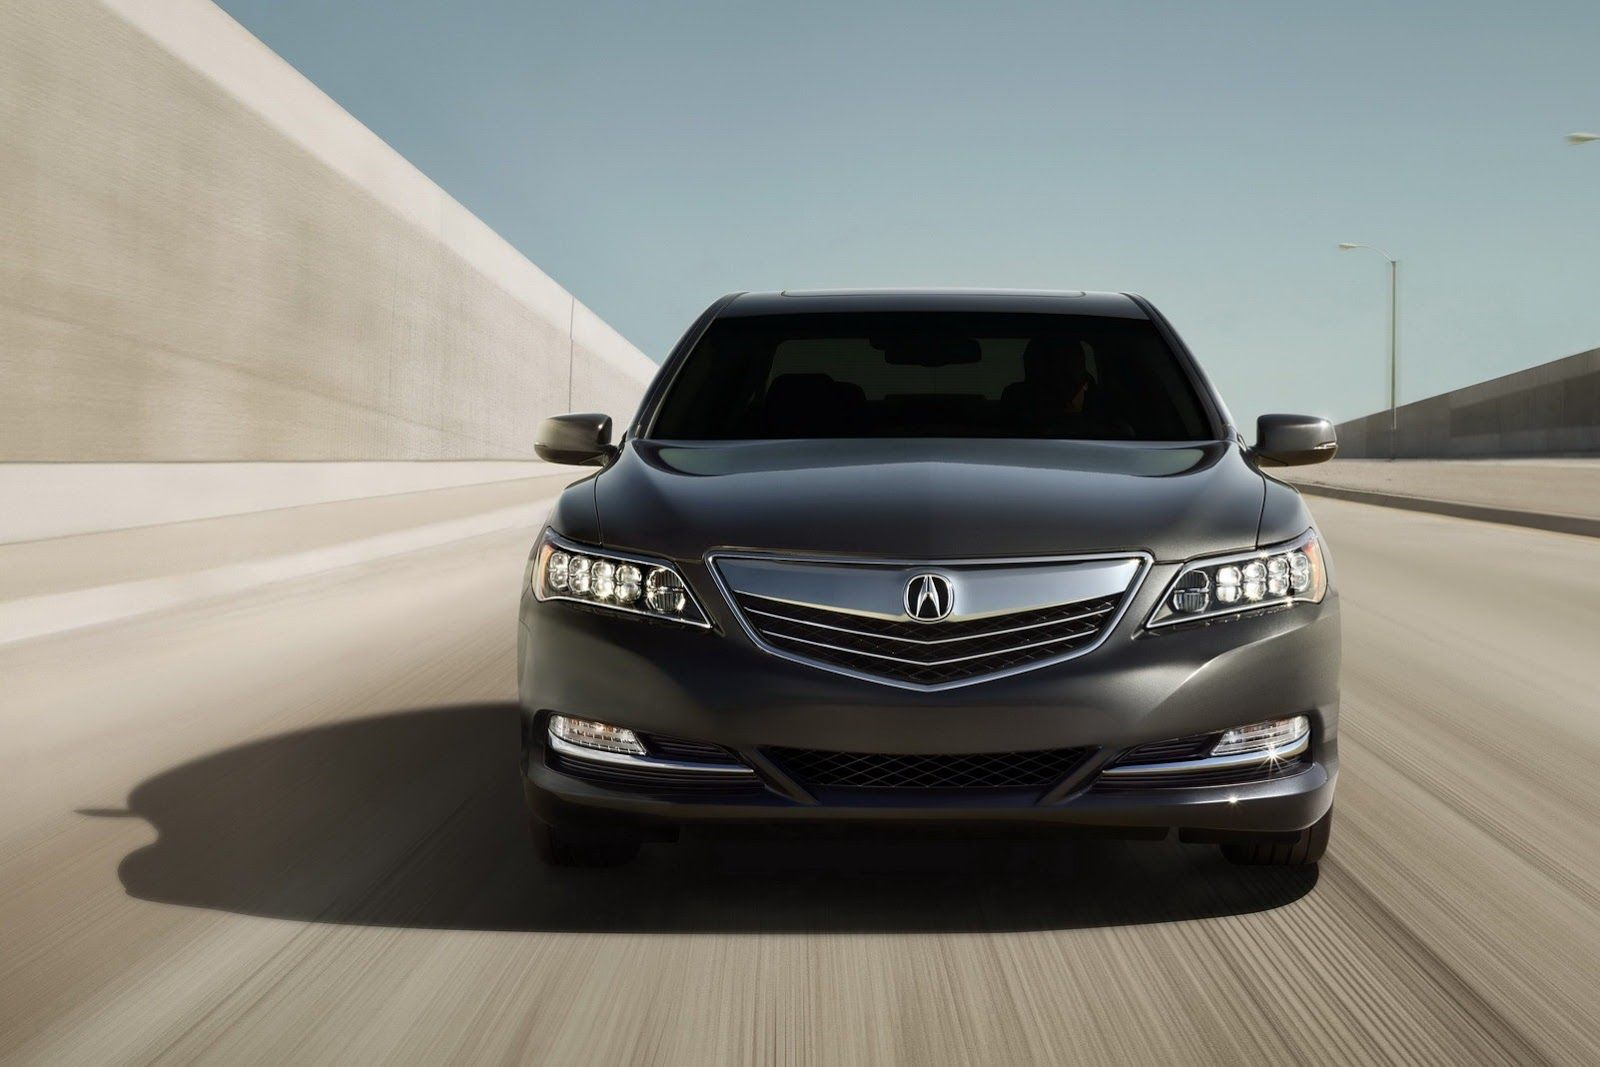 Introducing The Rlx Luxury Advanced Mungenastacura Like Our Facebook Page Http Www Facebook Com Stlouisacura Acura Best Hybrid Cars Vw Electric Car